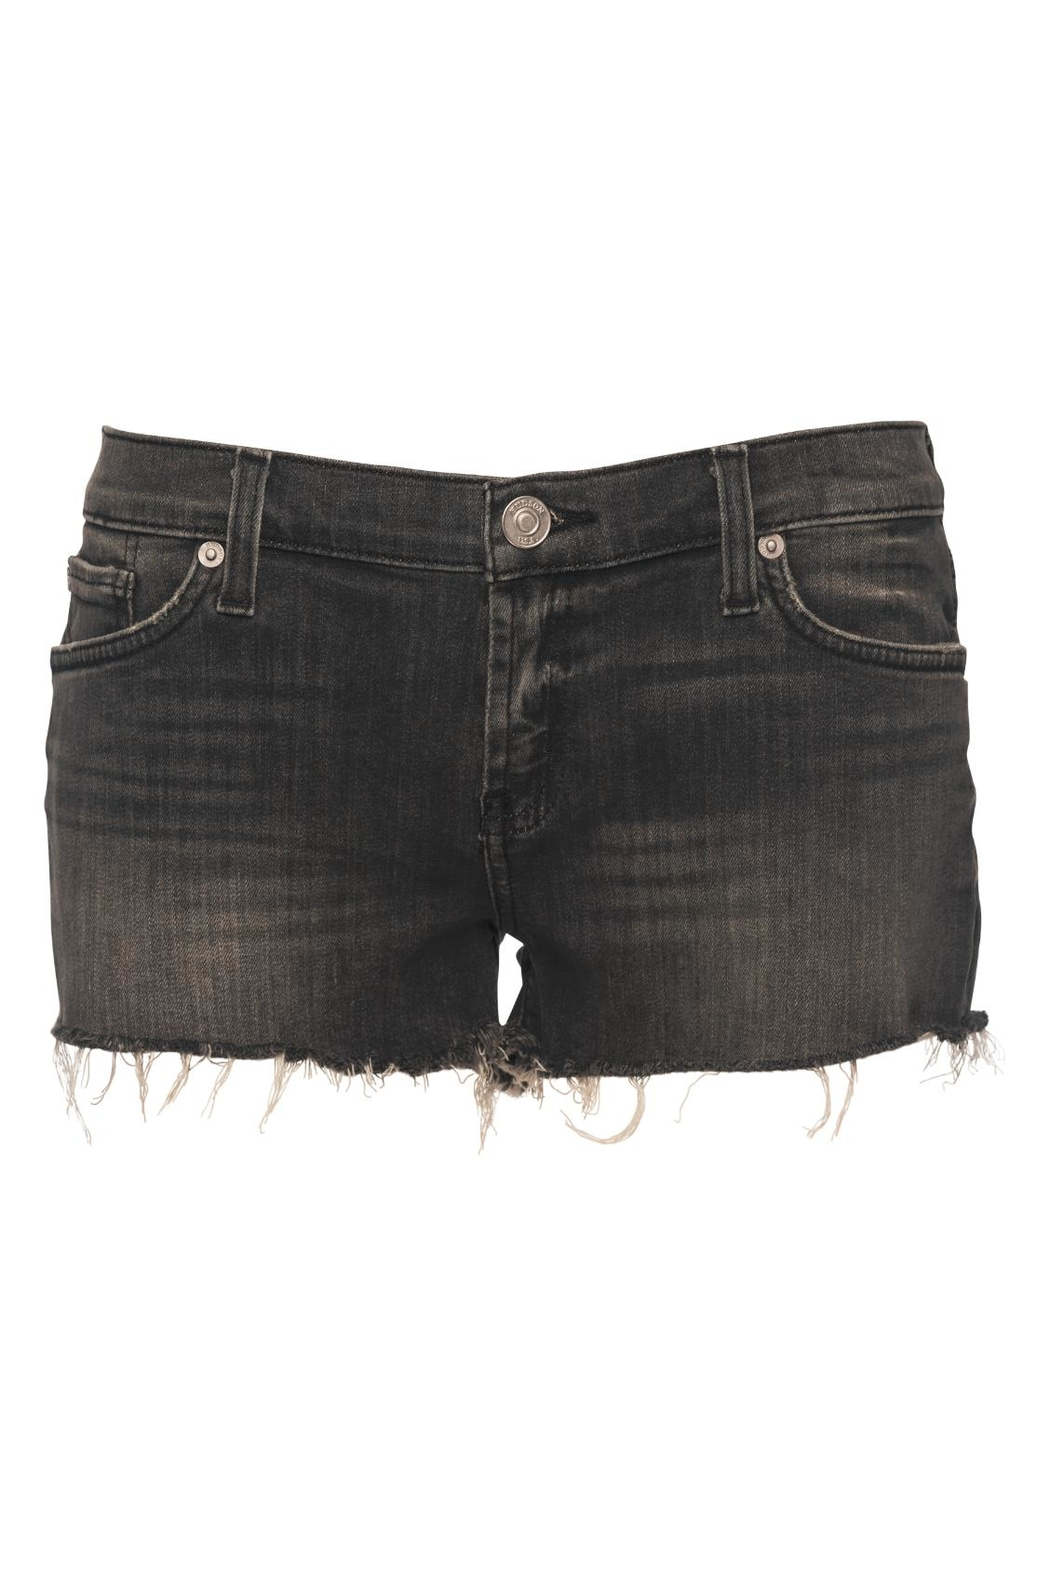 Hudson Jeans Kenzie Cut Off Shorts - Front Full Image